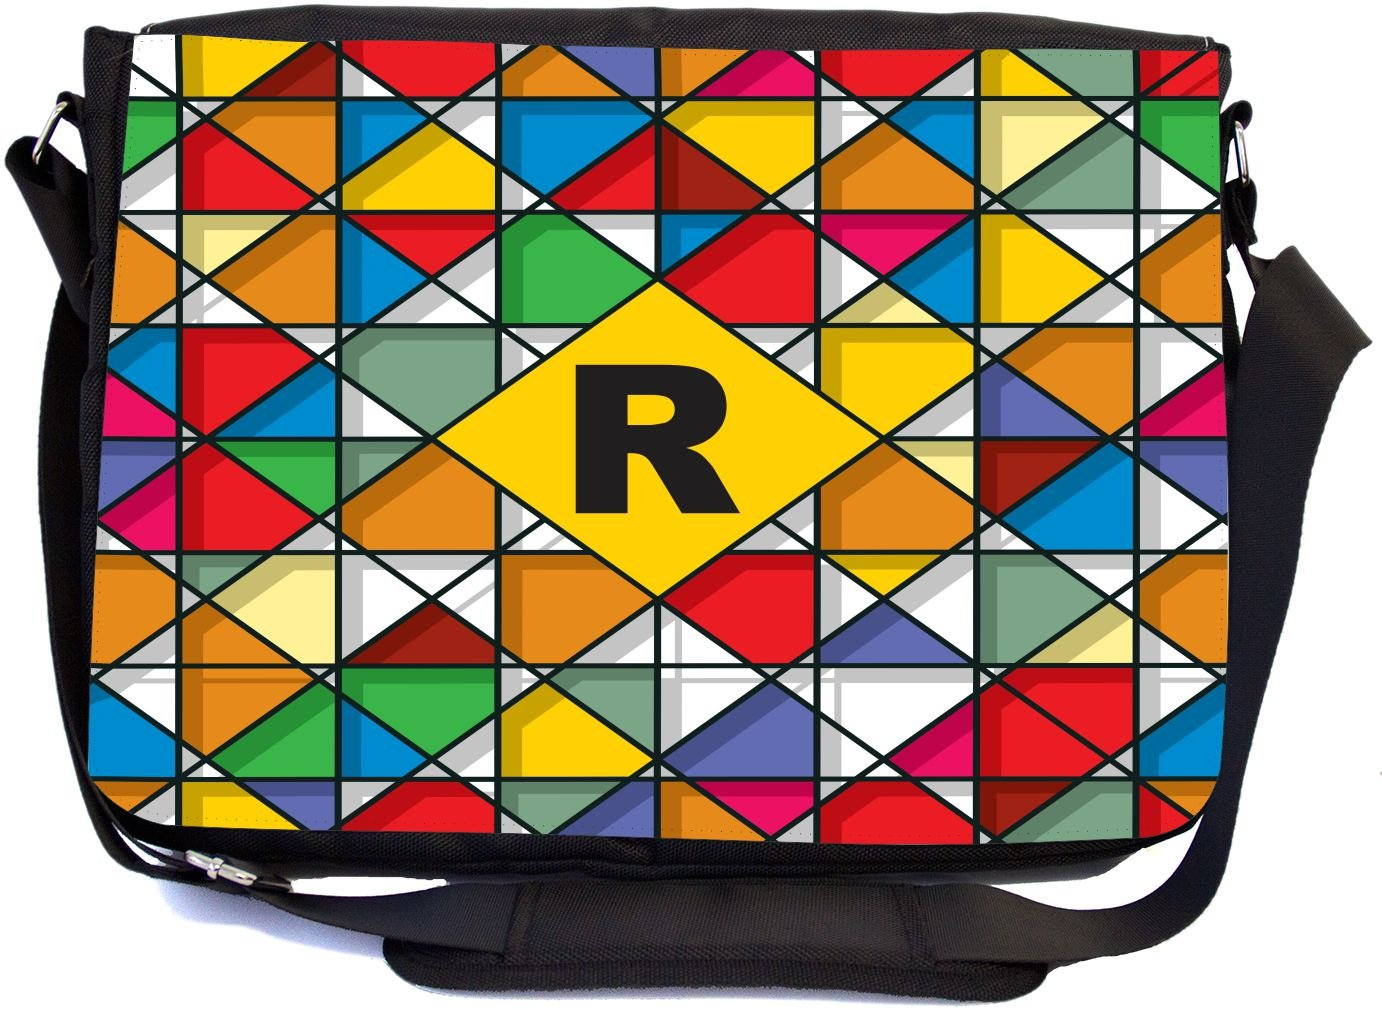 Rikki Knight Letter R Monogram Vibrant Colors Stained Glass Design Design Combo Multifunction Messenger Laptop Bag - with Padded Insert for School or Work - Includes Wristlet & Mirror